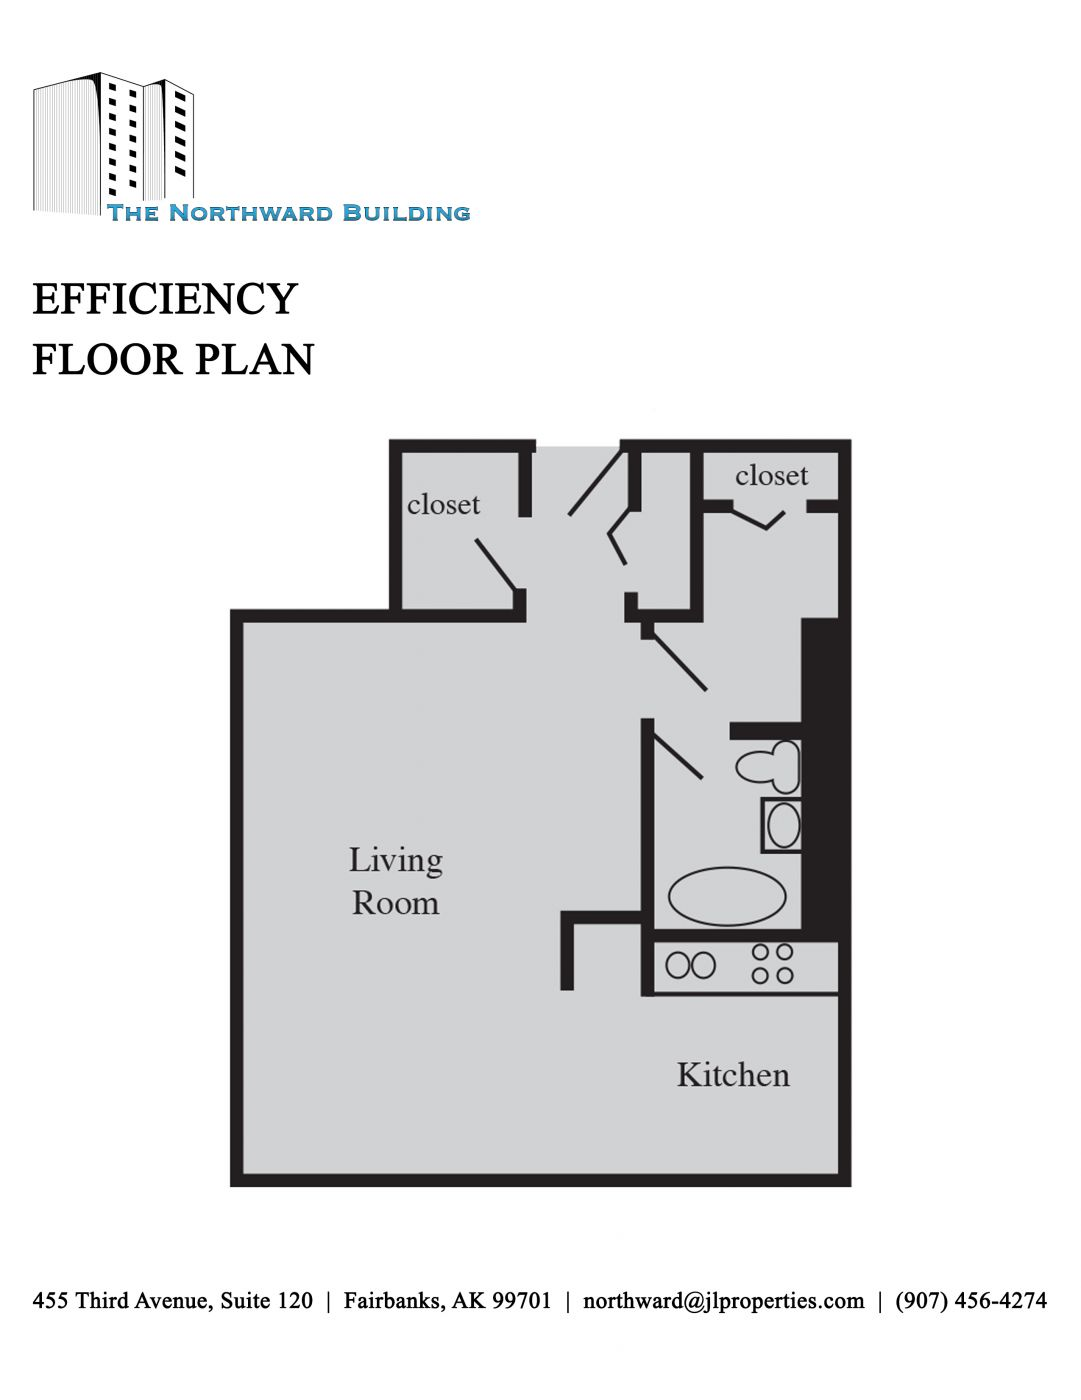 Fairbanks alaska apartments northward building efficiency for Alaska floor plans